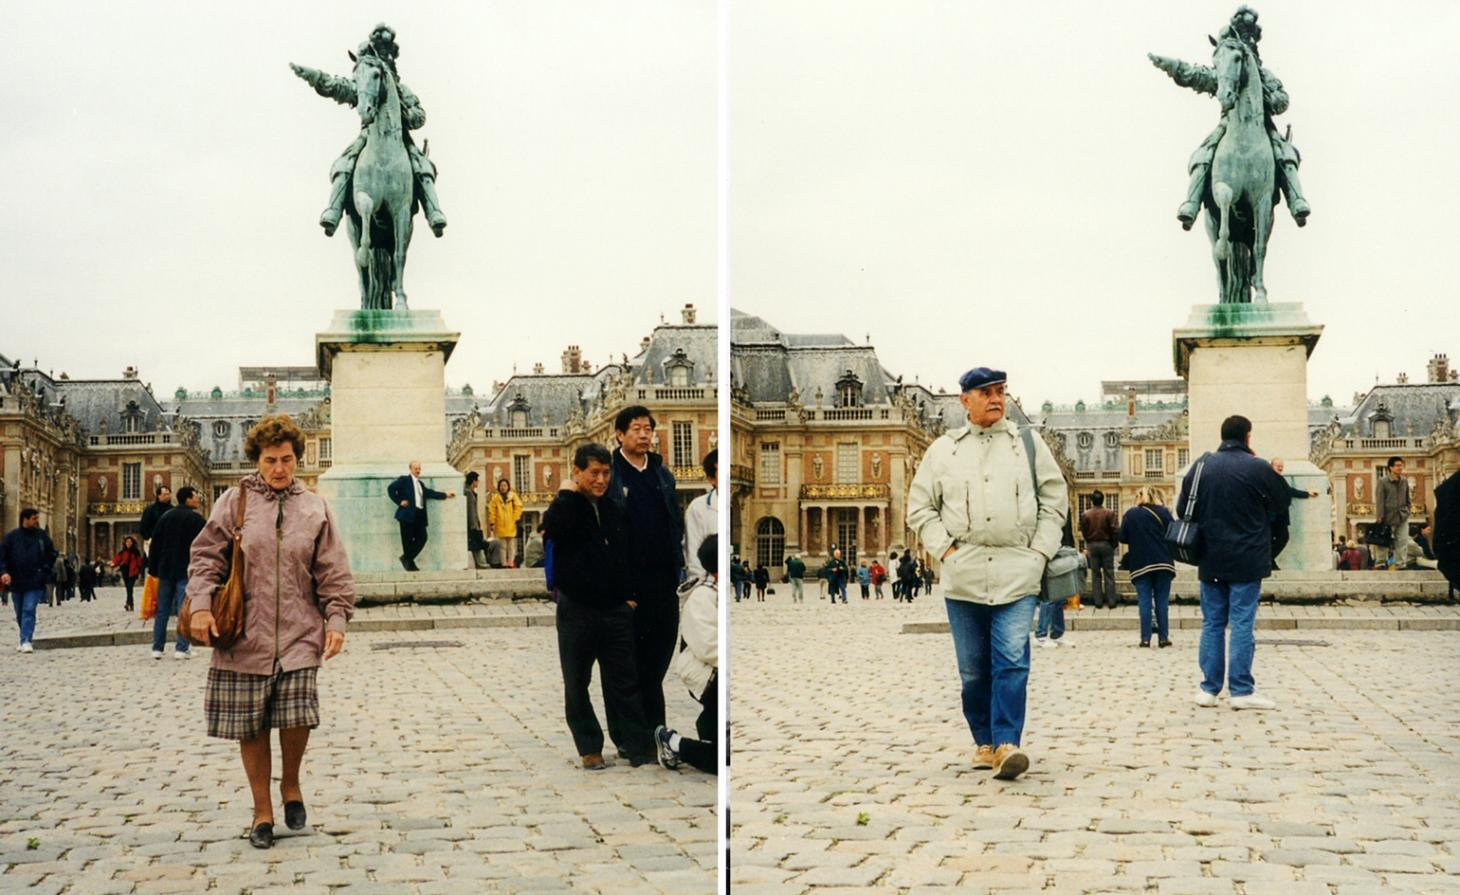 A man and a woman pictured separately in front of a plinth with a horse statue on in a book by Erik Kessels